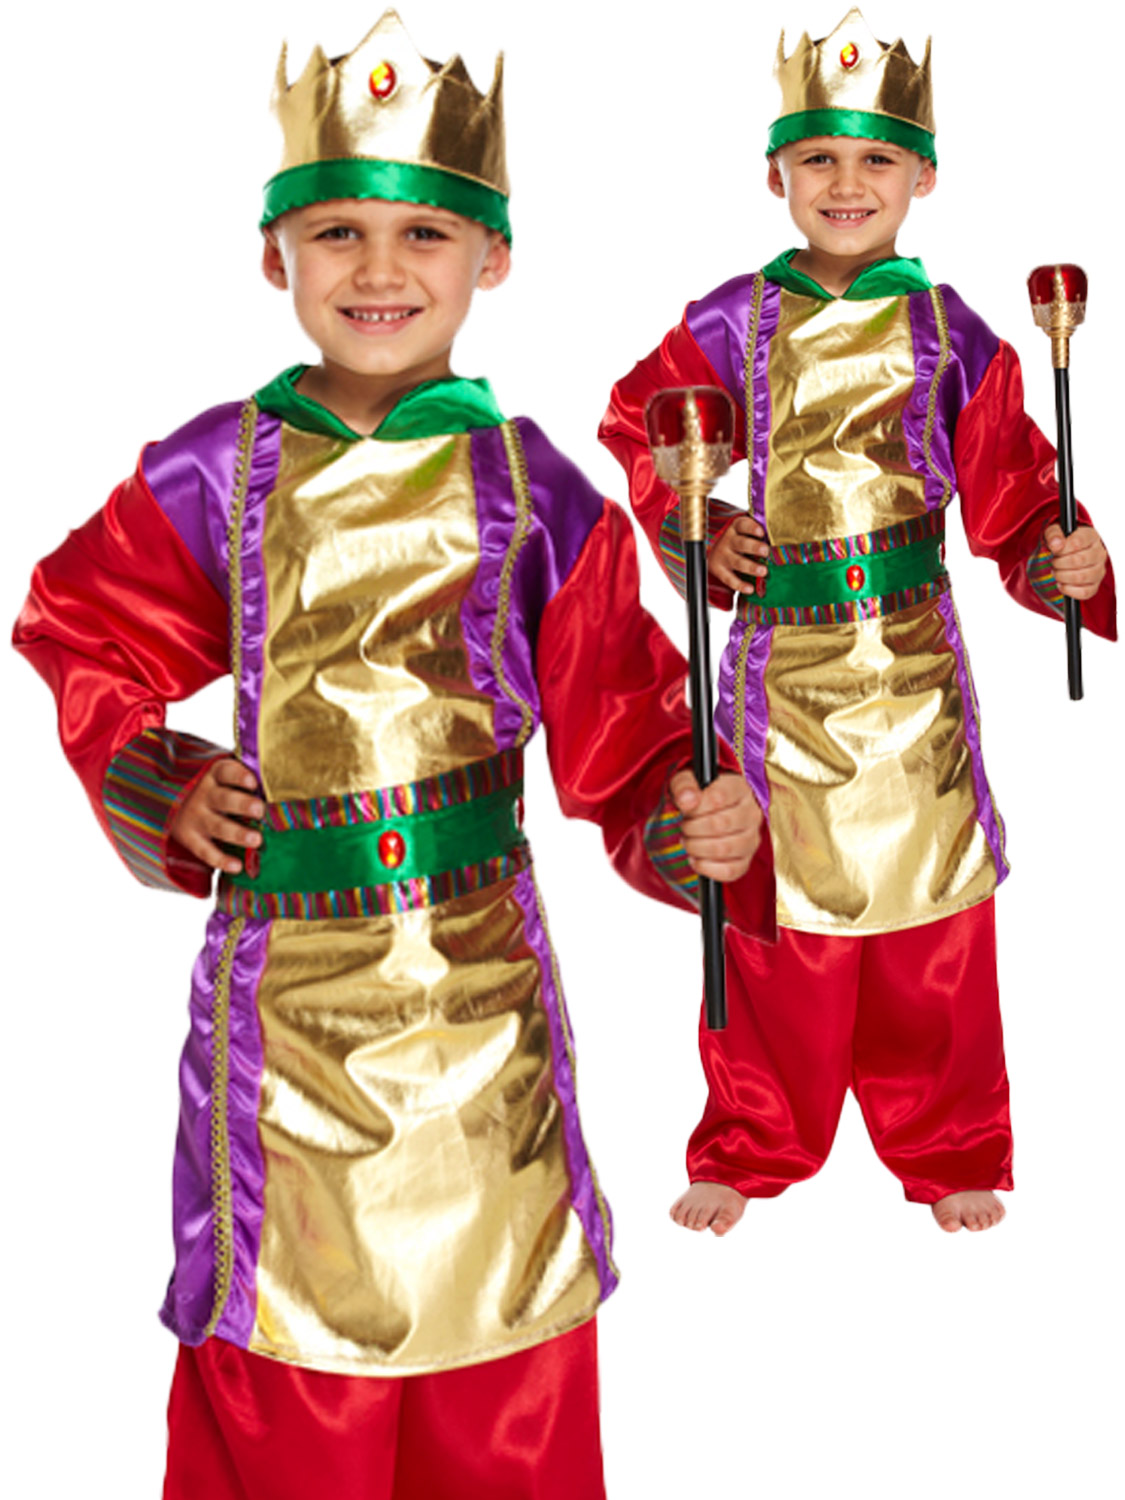 f8dcb425cdb34 Details about Boys King Costume Wise Man Christmas Fancy Dress Kids Child  Nativity Play Outfit